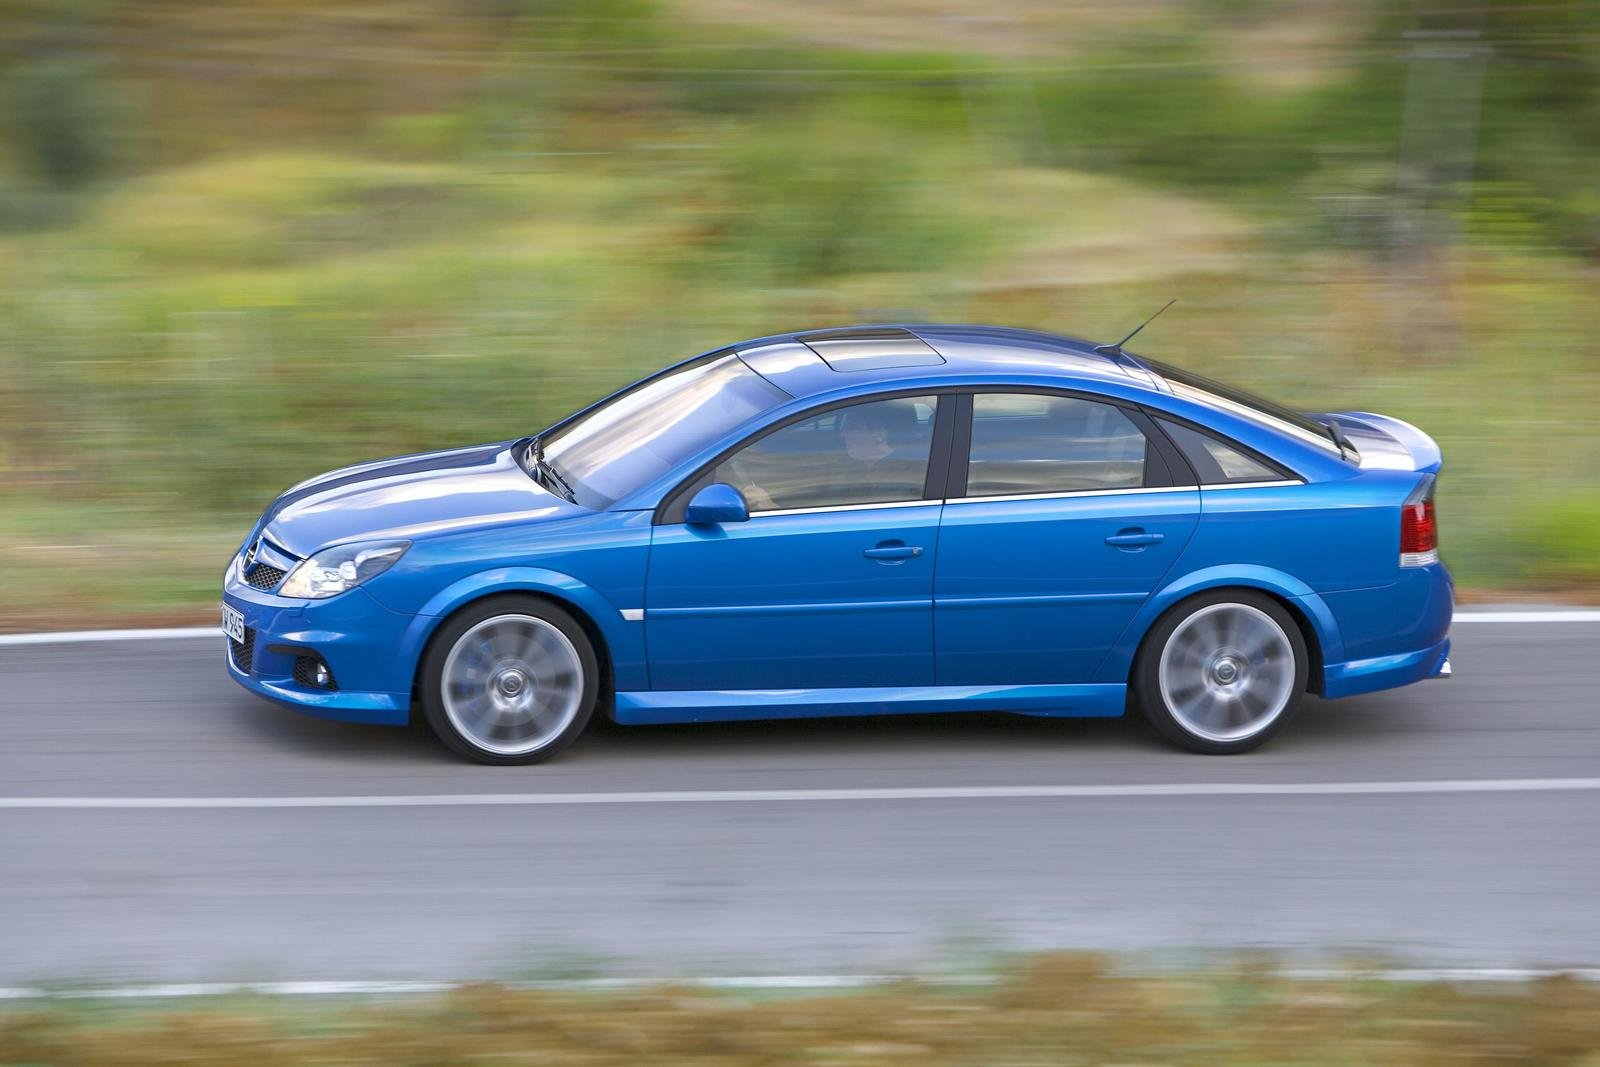 2008 Opel Vectra Opc Picture 190625 Car Review Top Speed